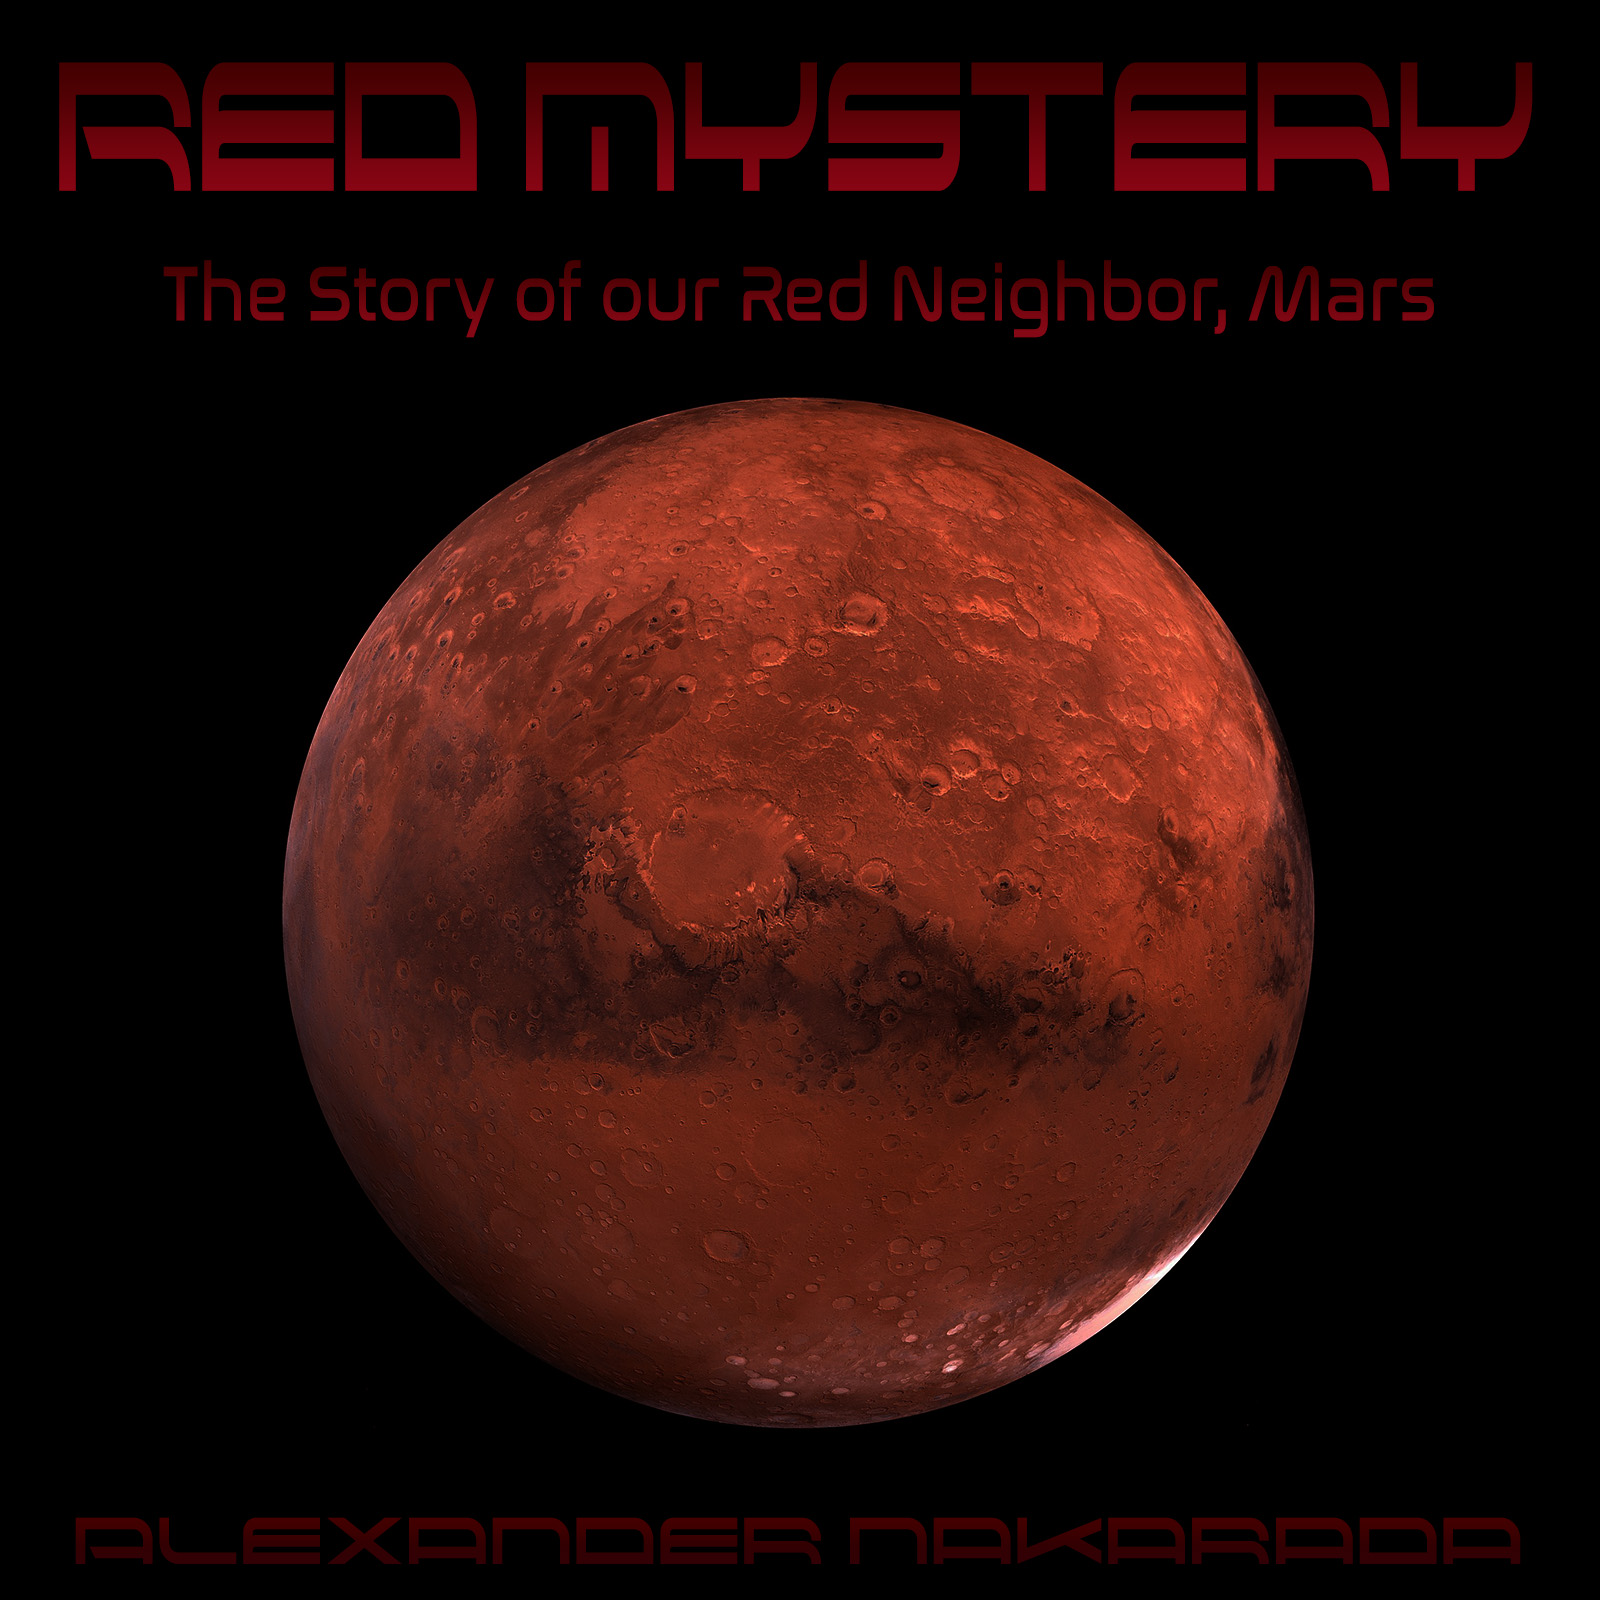 Red Mystery - The Story of our Red Neighbor, Mars - Cinematic/epic/relaxing/sci-fi album following the timeline of our exploration of Mars. Join the journey!